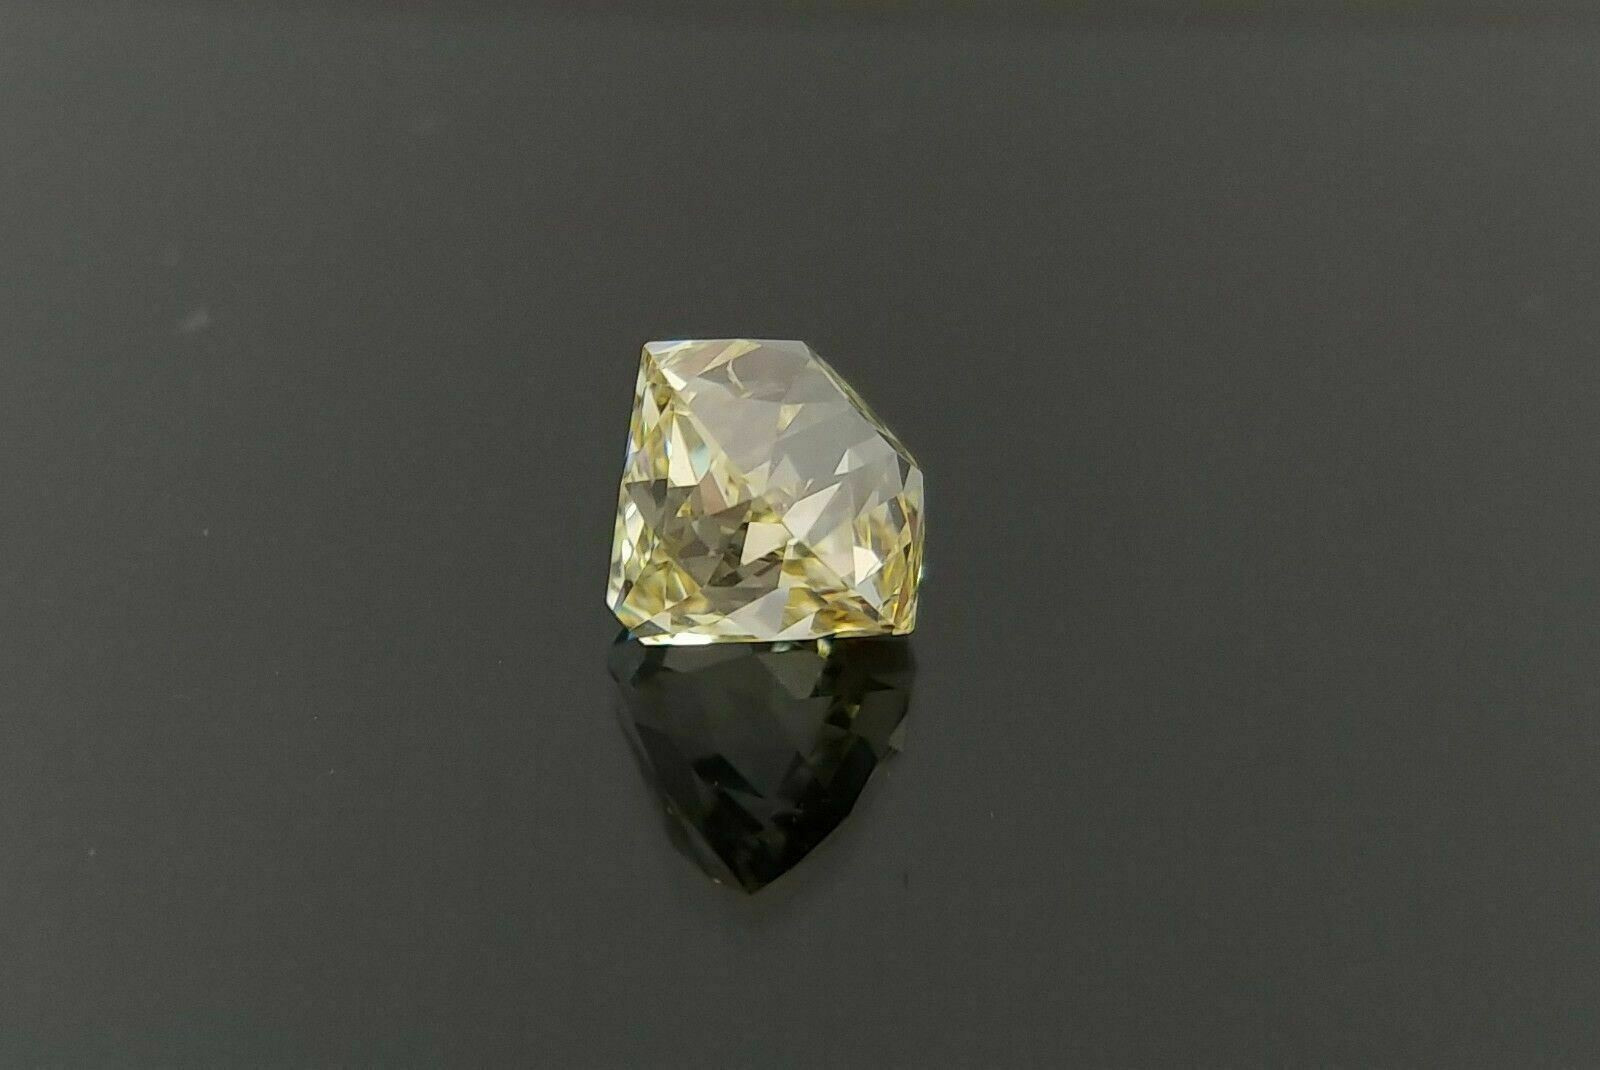 3.18 ct Old Mine Cut - N/SI1 DIAMOND - AGS# 104097445001